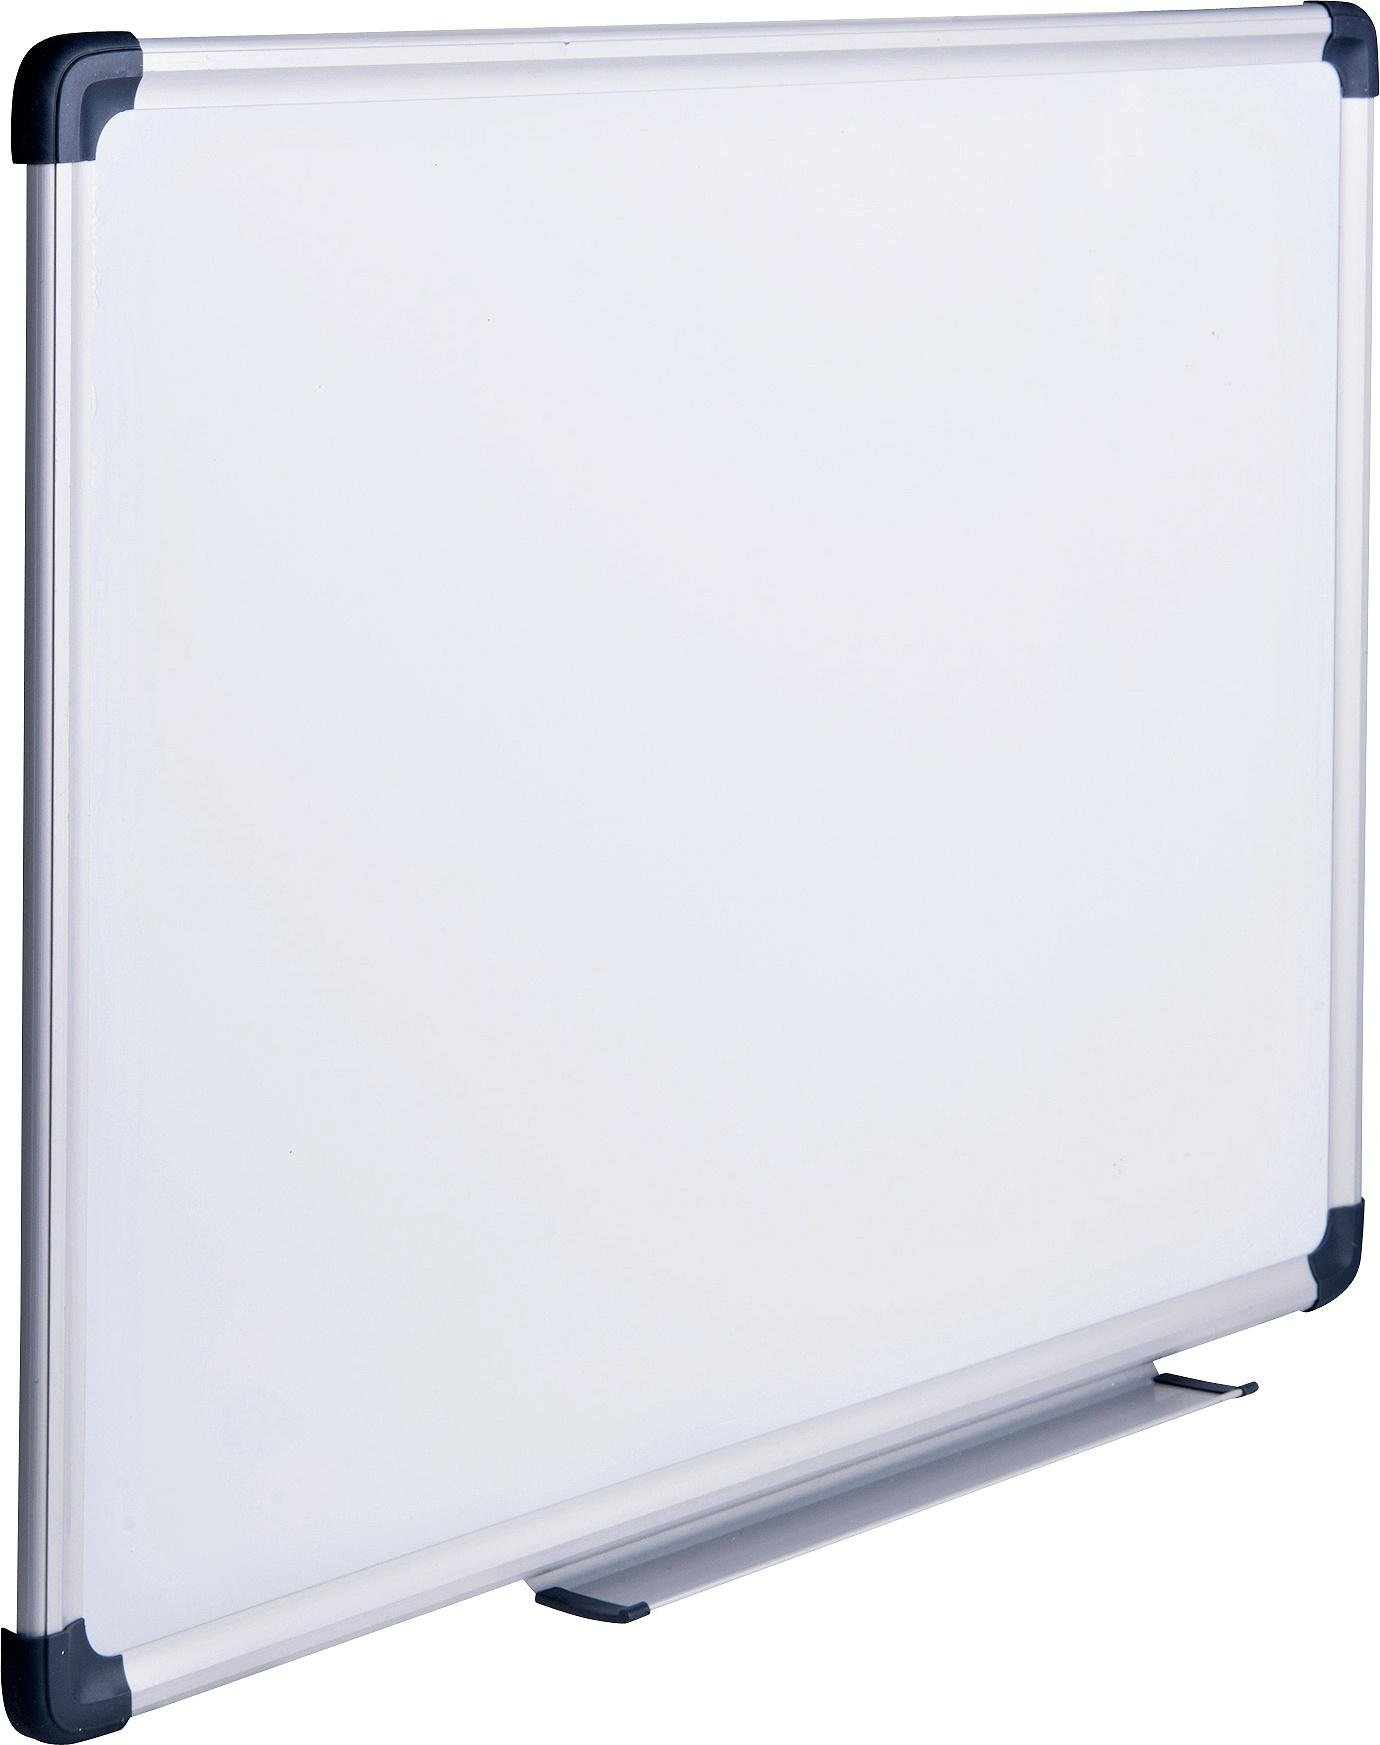 cathedral-magnetic-whiteboard-45-x-60cm